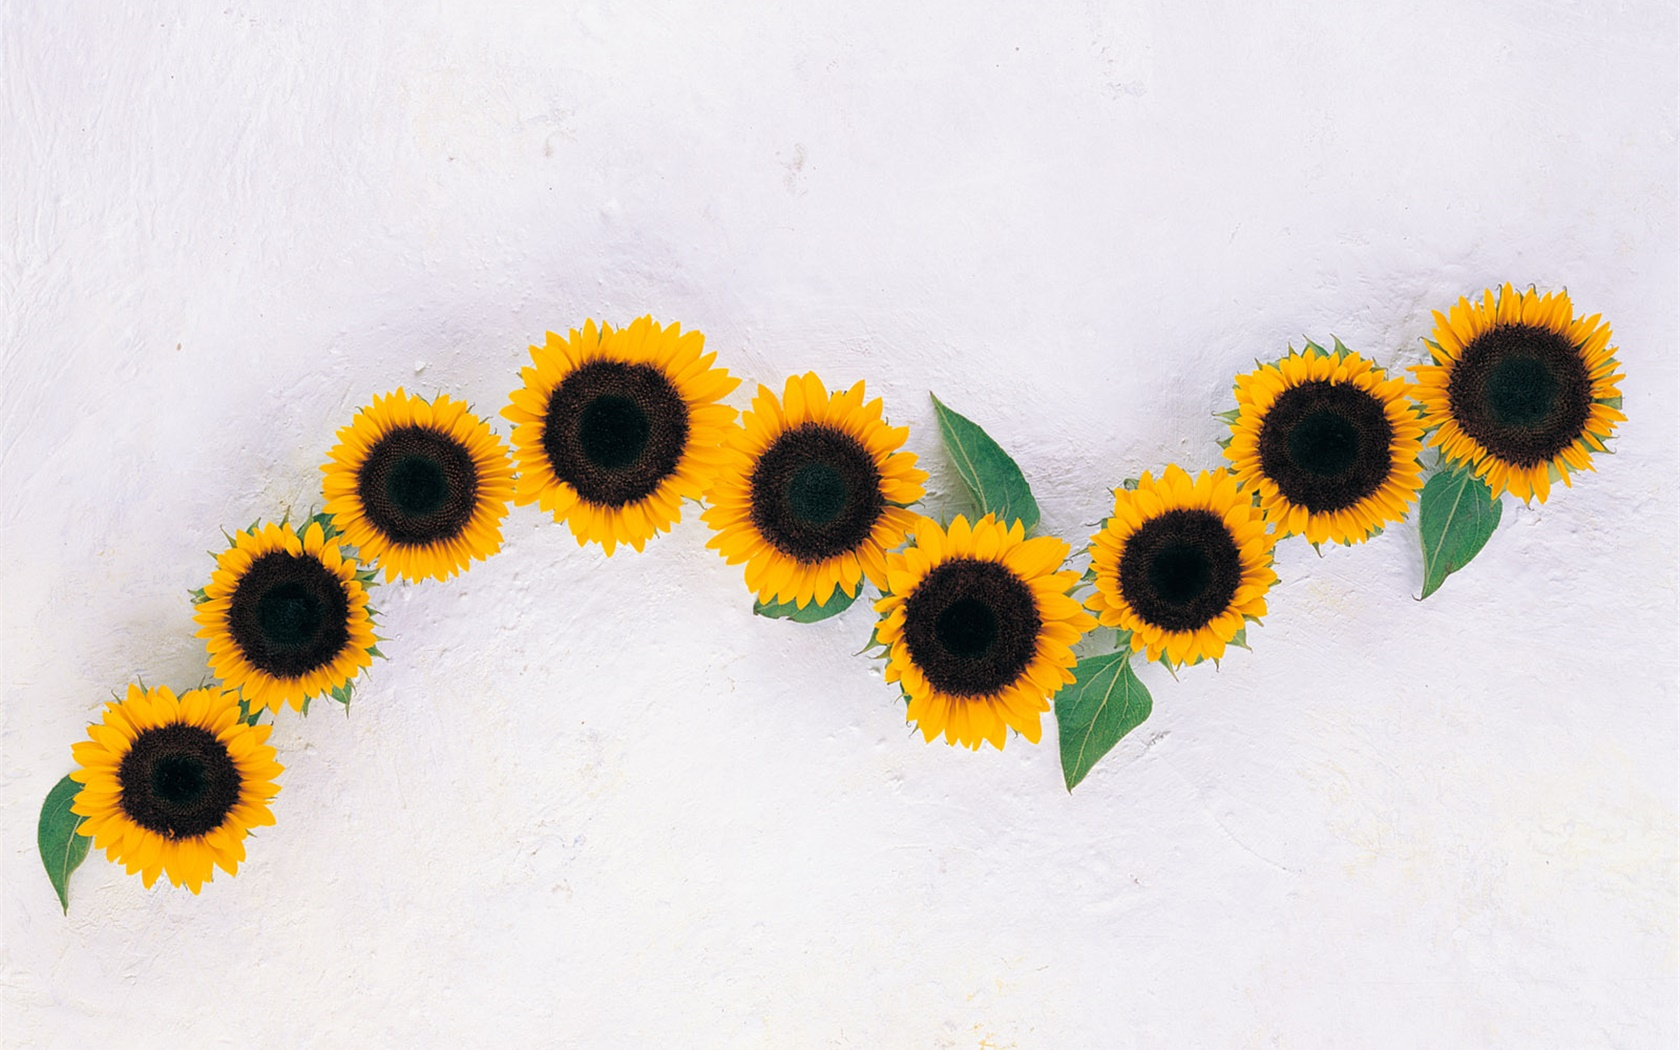 Sunflowers, white background 1680x1050 wallpaper